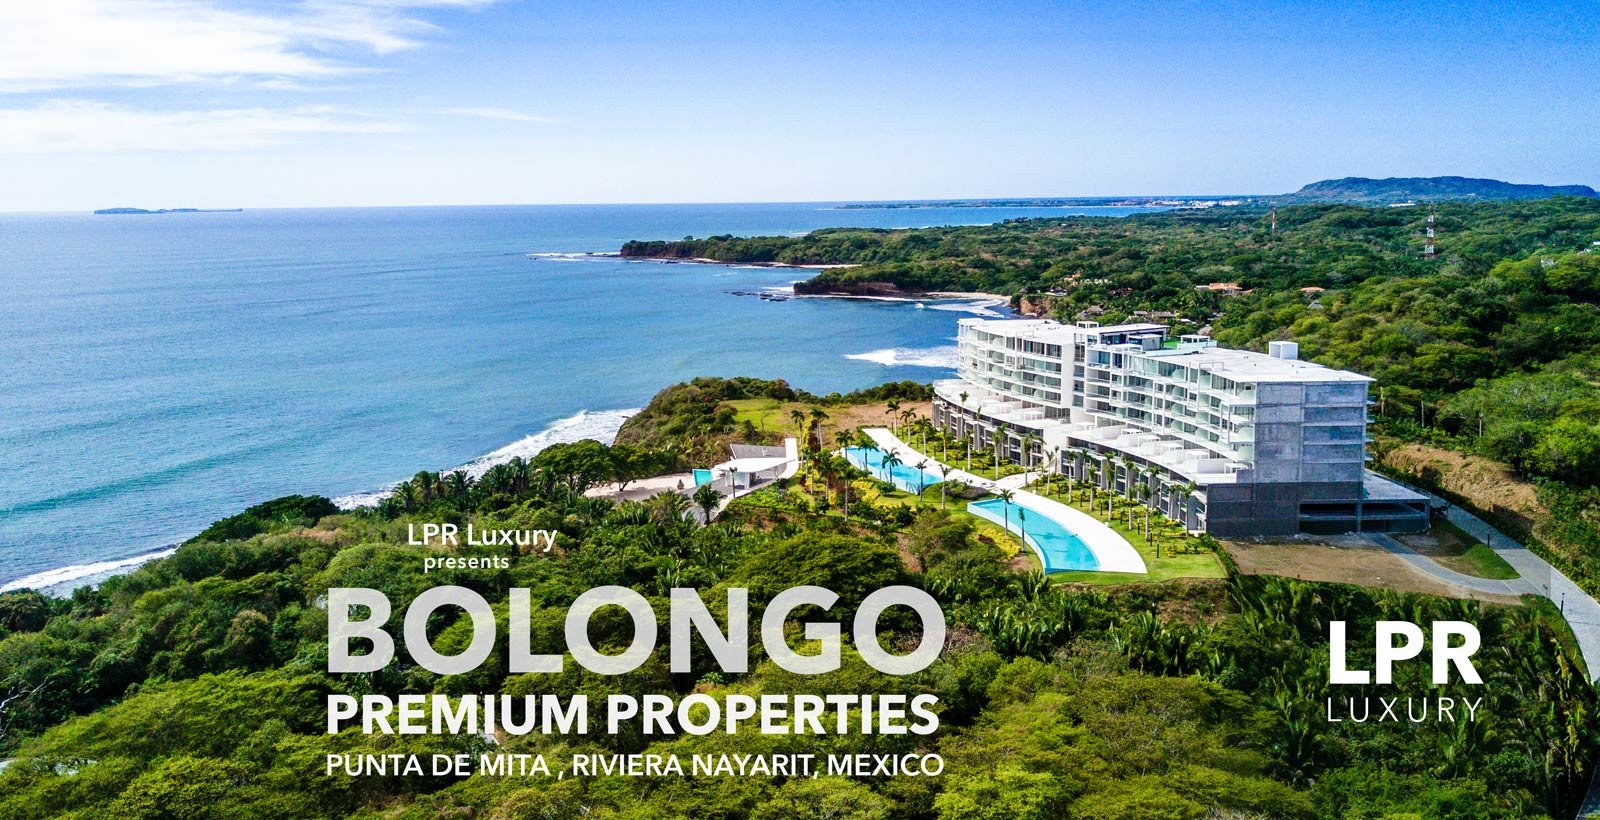 Bolongo - Luxury Punta de Mita Real Estate and Vacation Rentals Villas